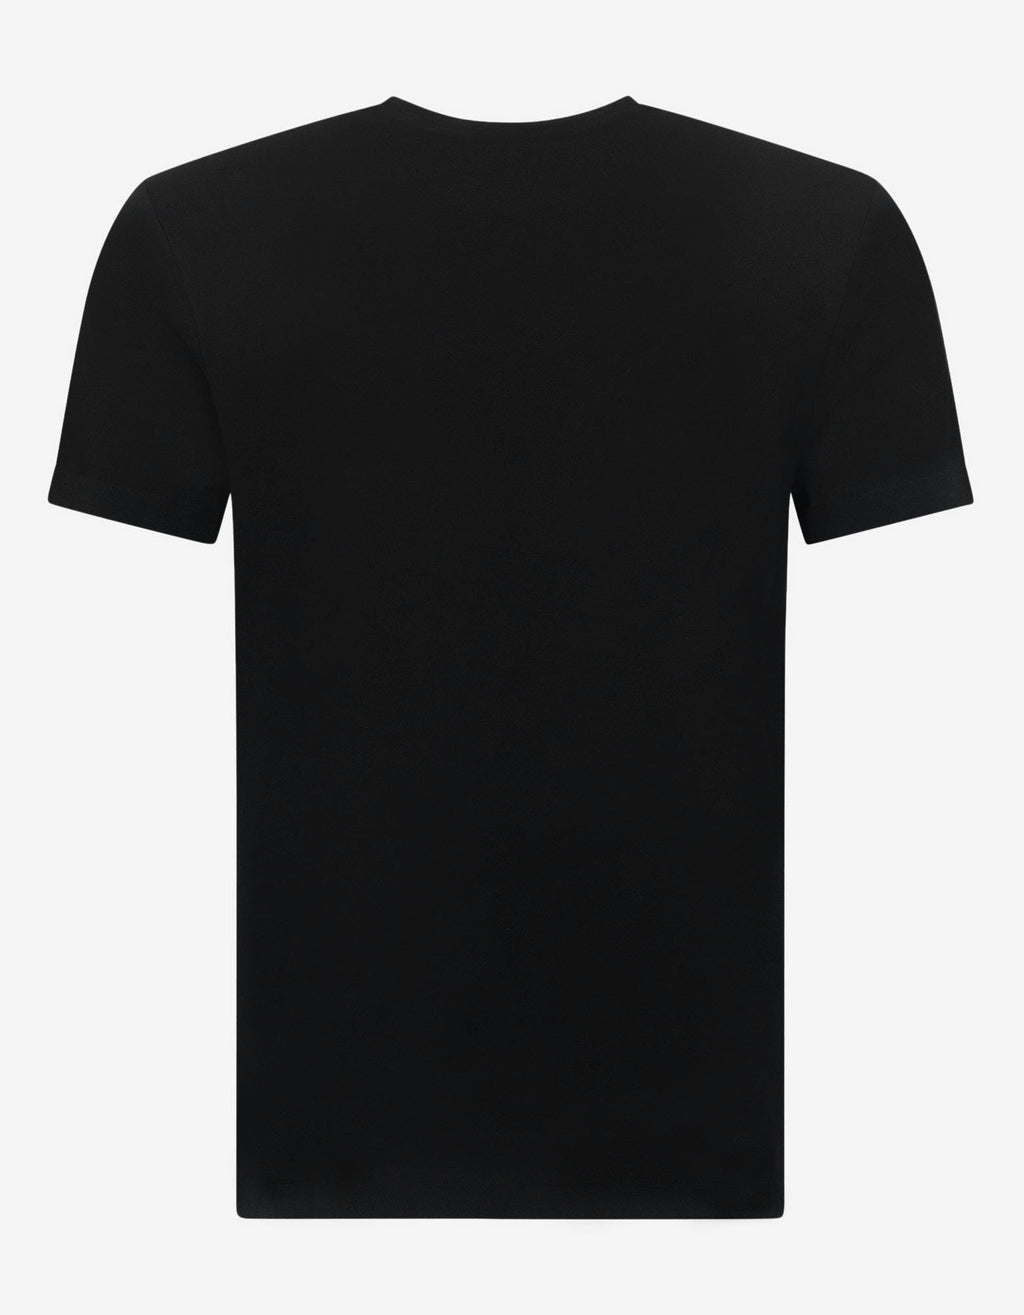 Black Home Signature Print T-Shirt